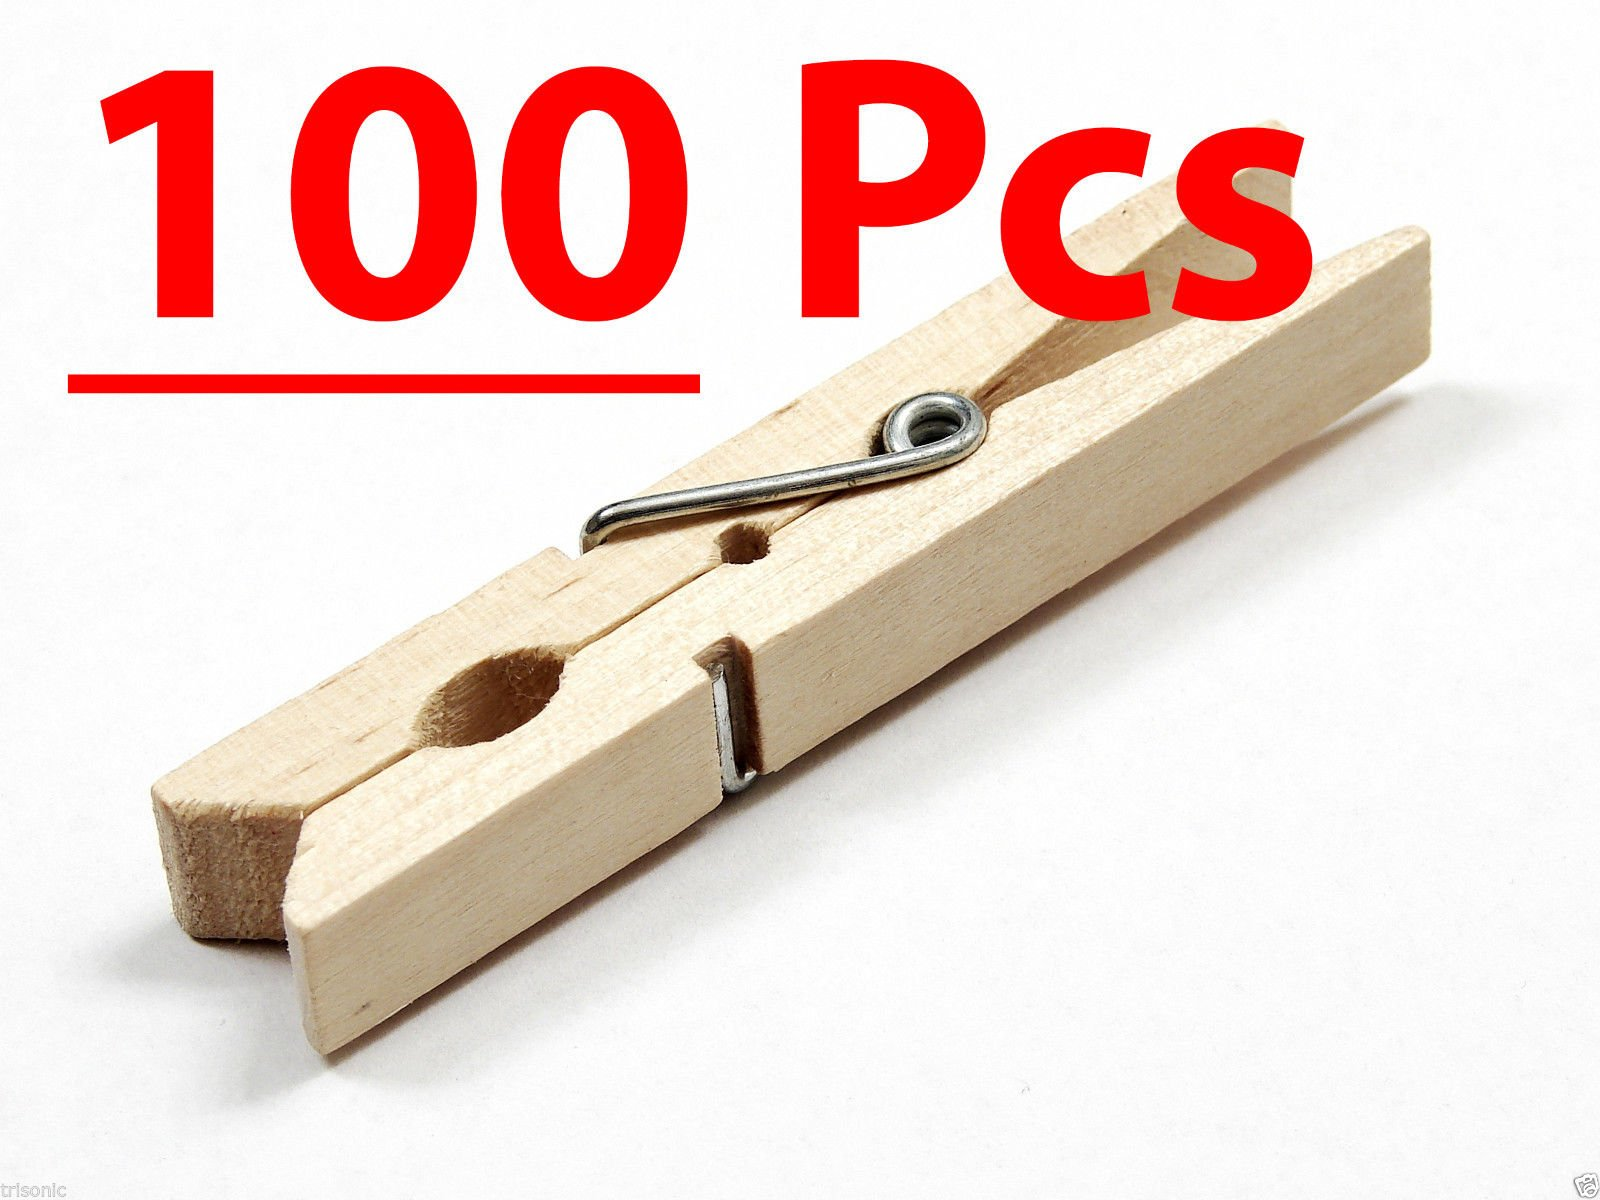 Aromdeeshopping New Wood-Clothespins-Wooden-Laundry-Clothes-Pins-Large-Spring-Regular-Size 100-Pcs